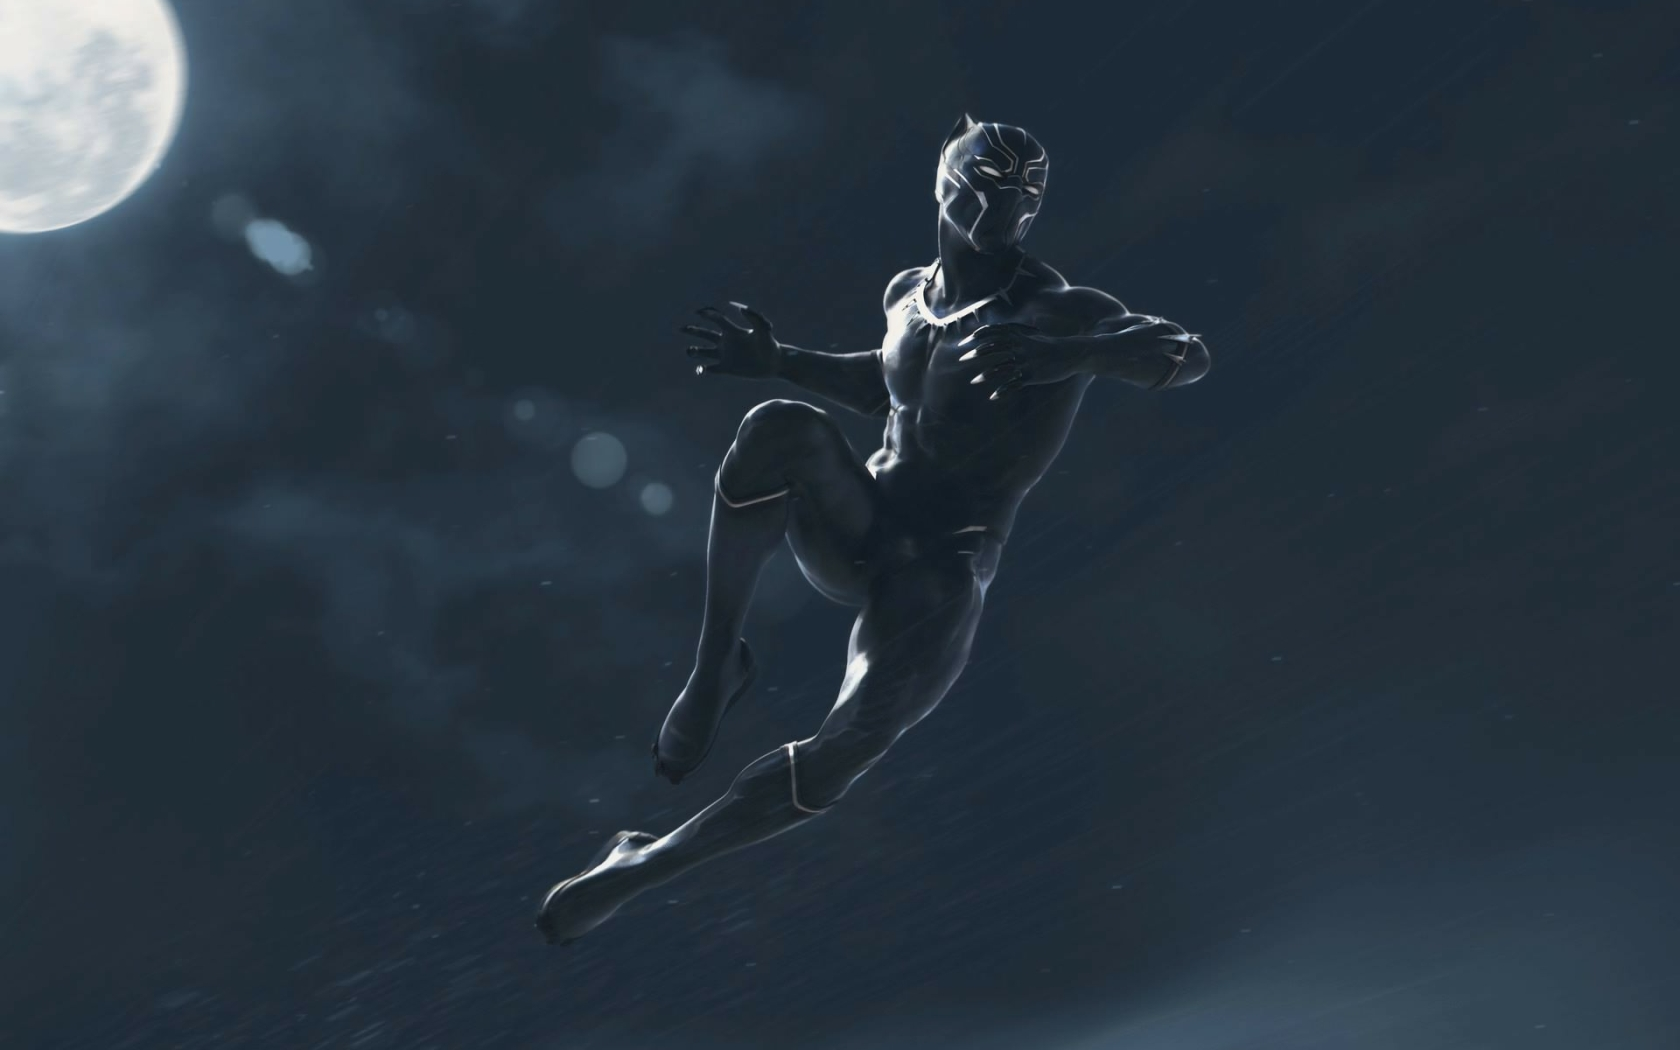 Marvel Black Panther Wallpaper Hd: Black Panther Marvel Movie, Full HD Wallpaper